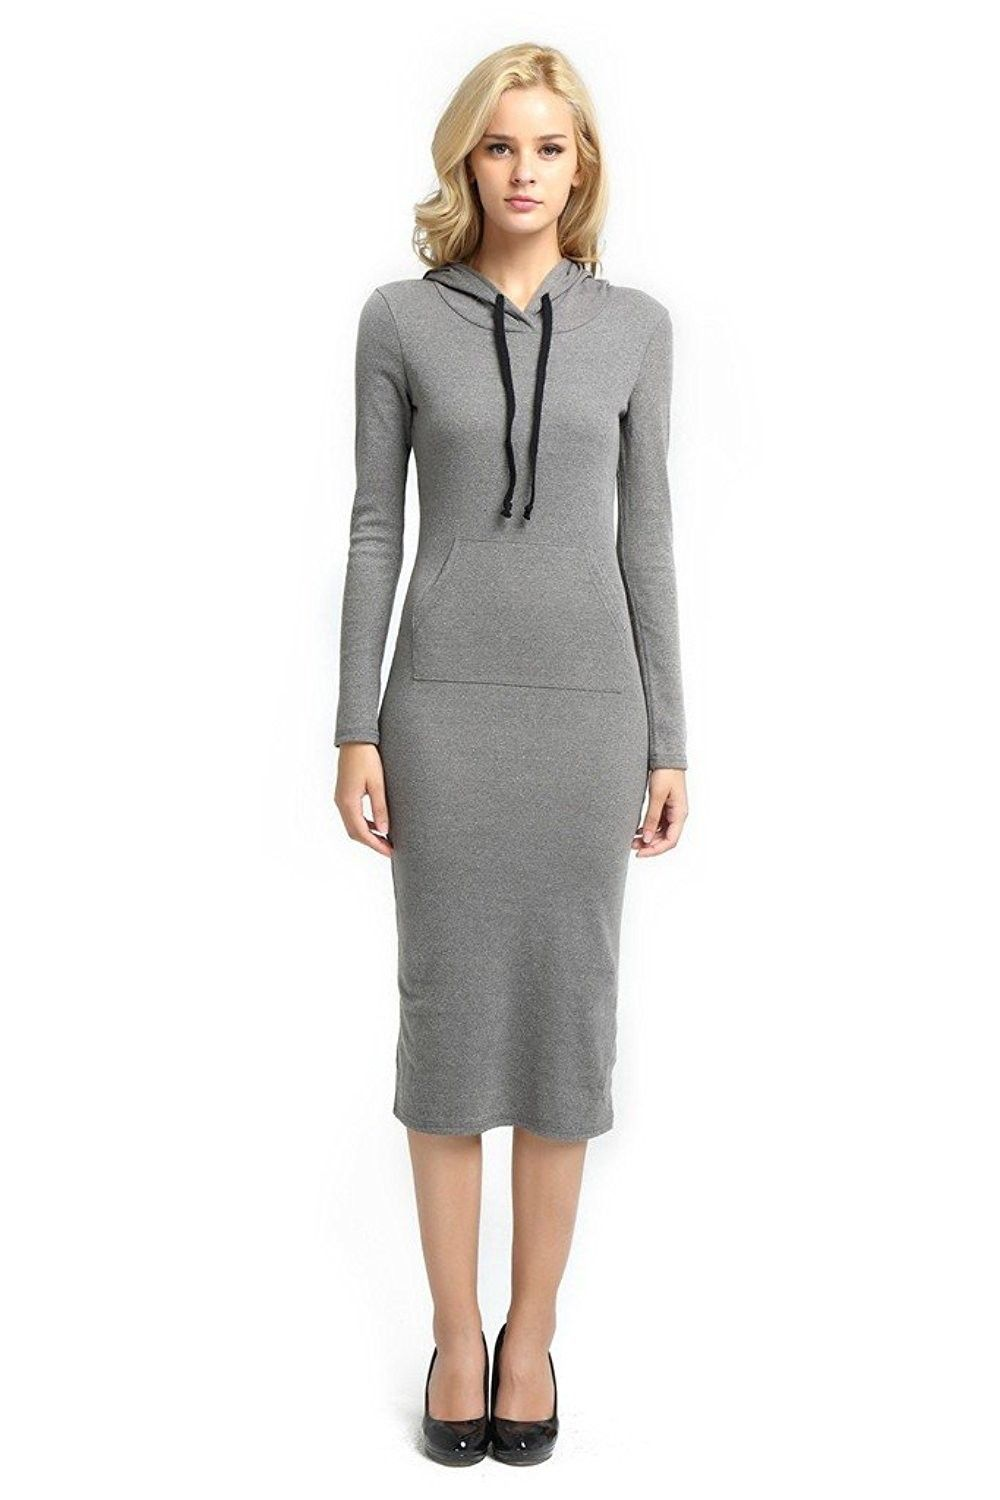 Hoodie dress long sleeve bodycon with kangaroo pockets for women